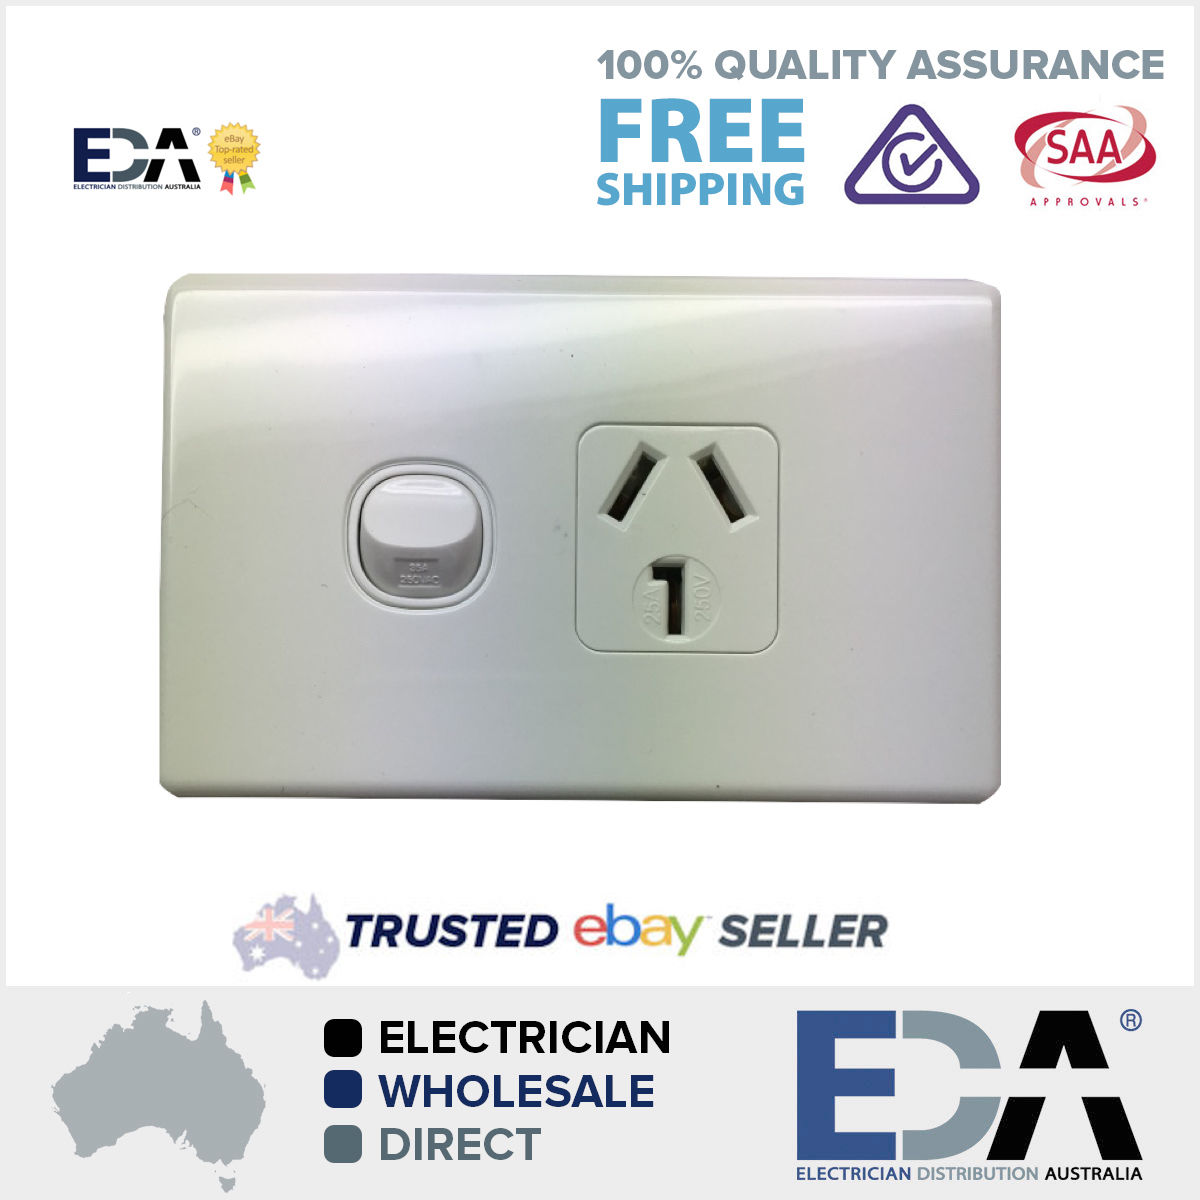 25 amp Single GPO Power Point Outlet Electrical - Eda Online